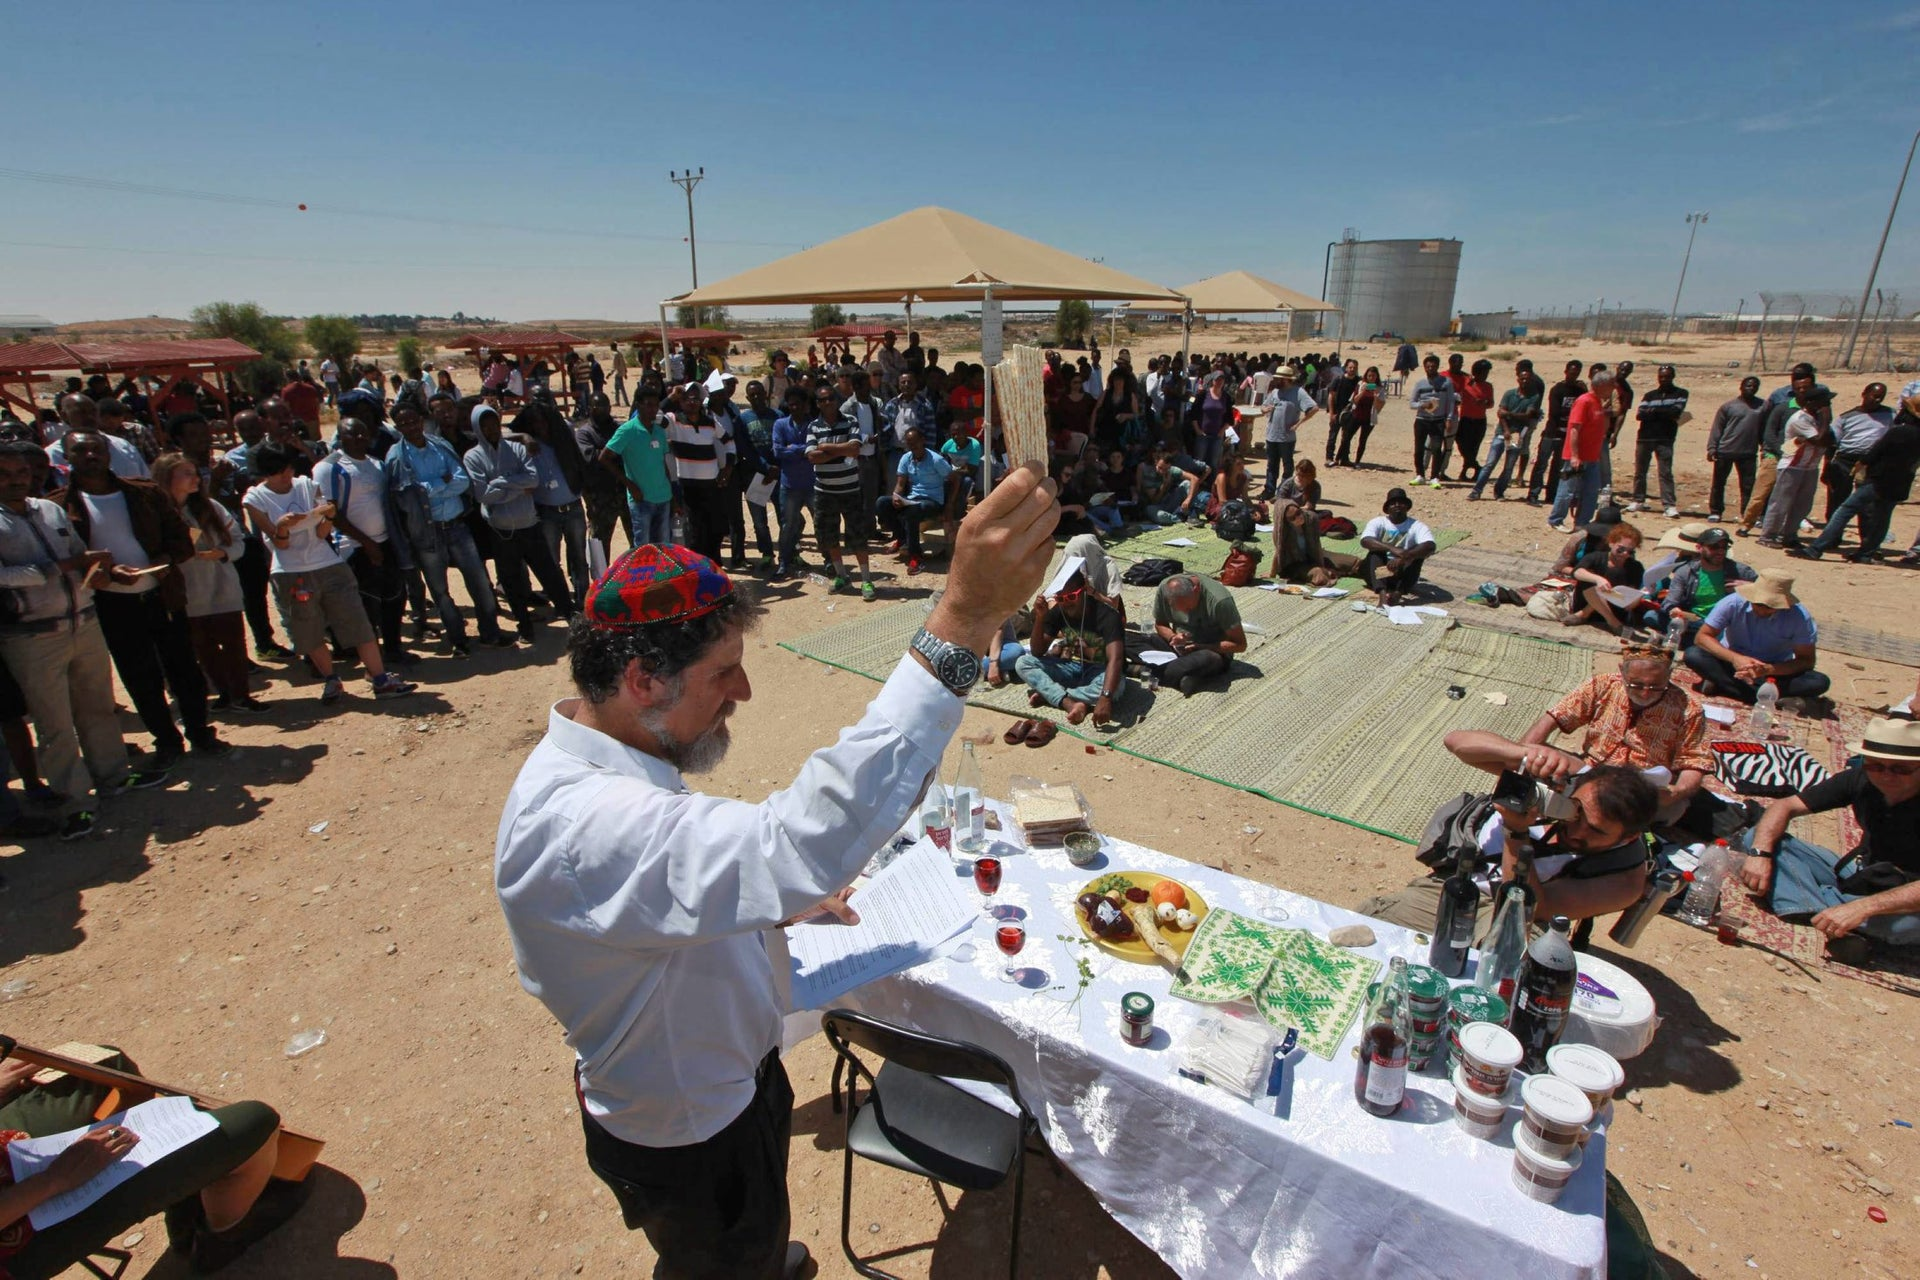 Rabbi Arik Ascherman, the president of Rabbis for Human Rights, at the Passover seder held at the Holot detention facility, April 15, 2016.